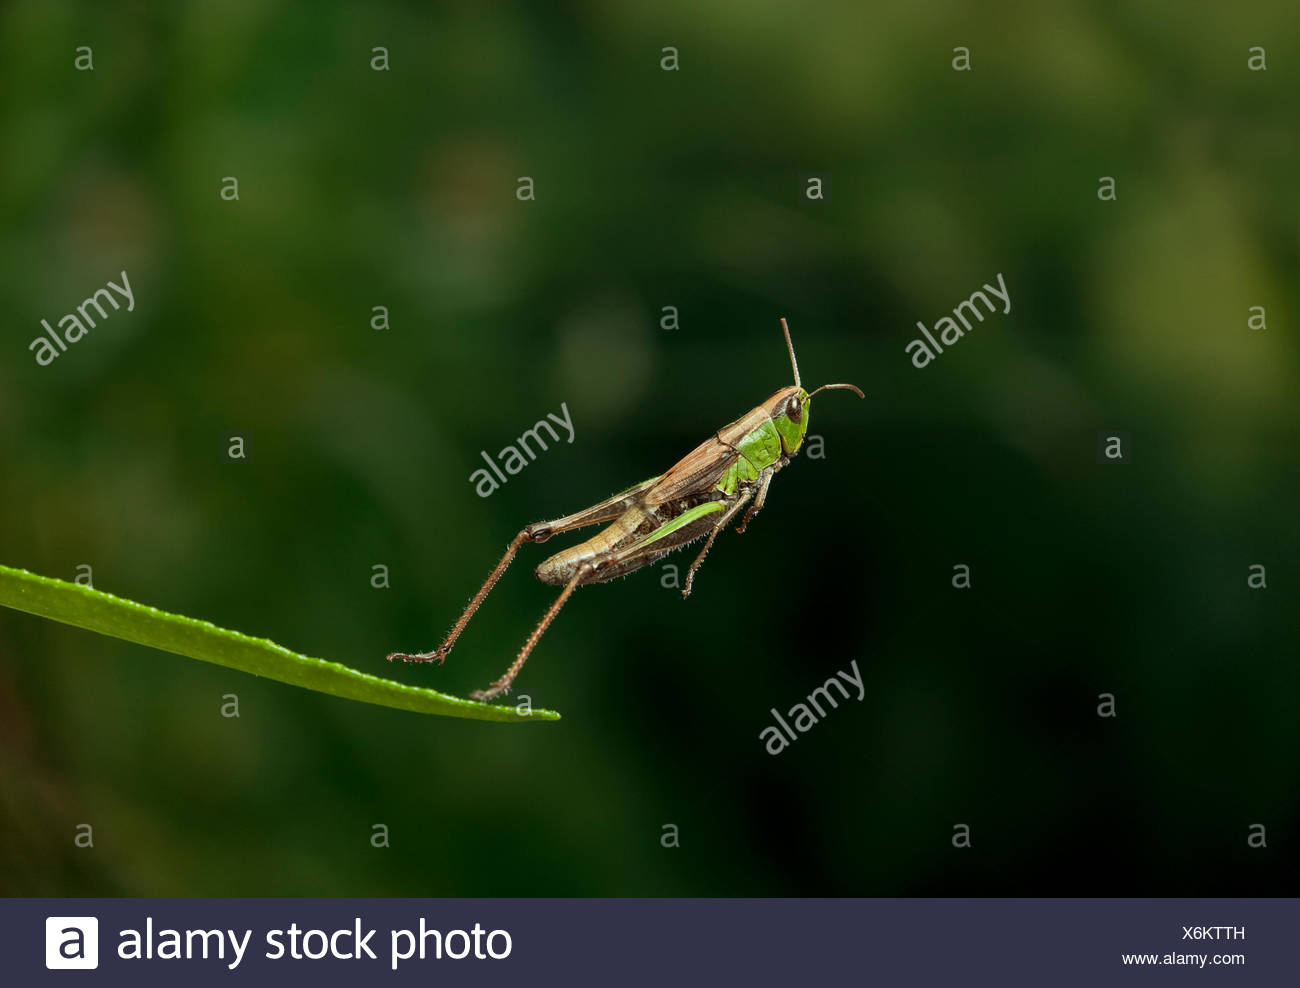 Meadow grasshopper (Chorthippus parallelus) leaping, UK - Stock Image